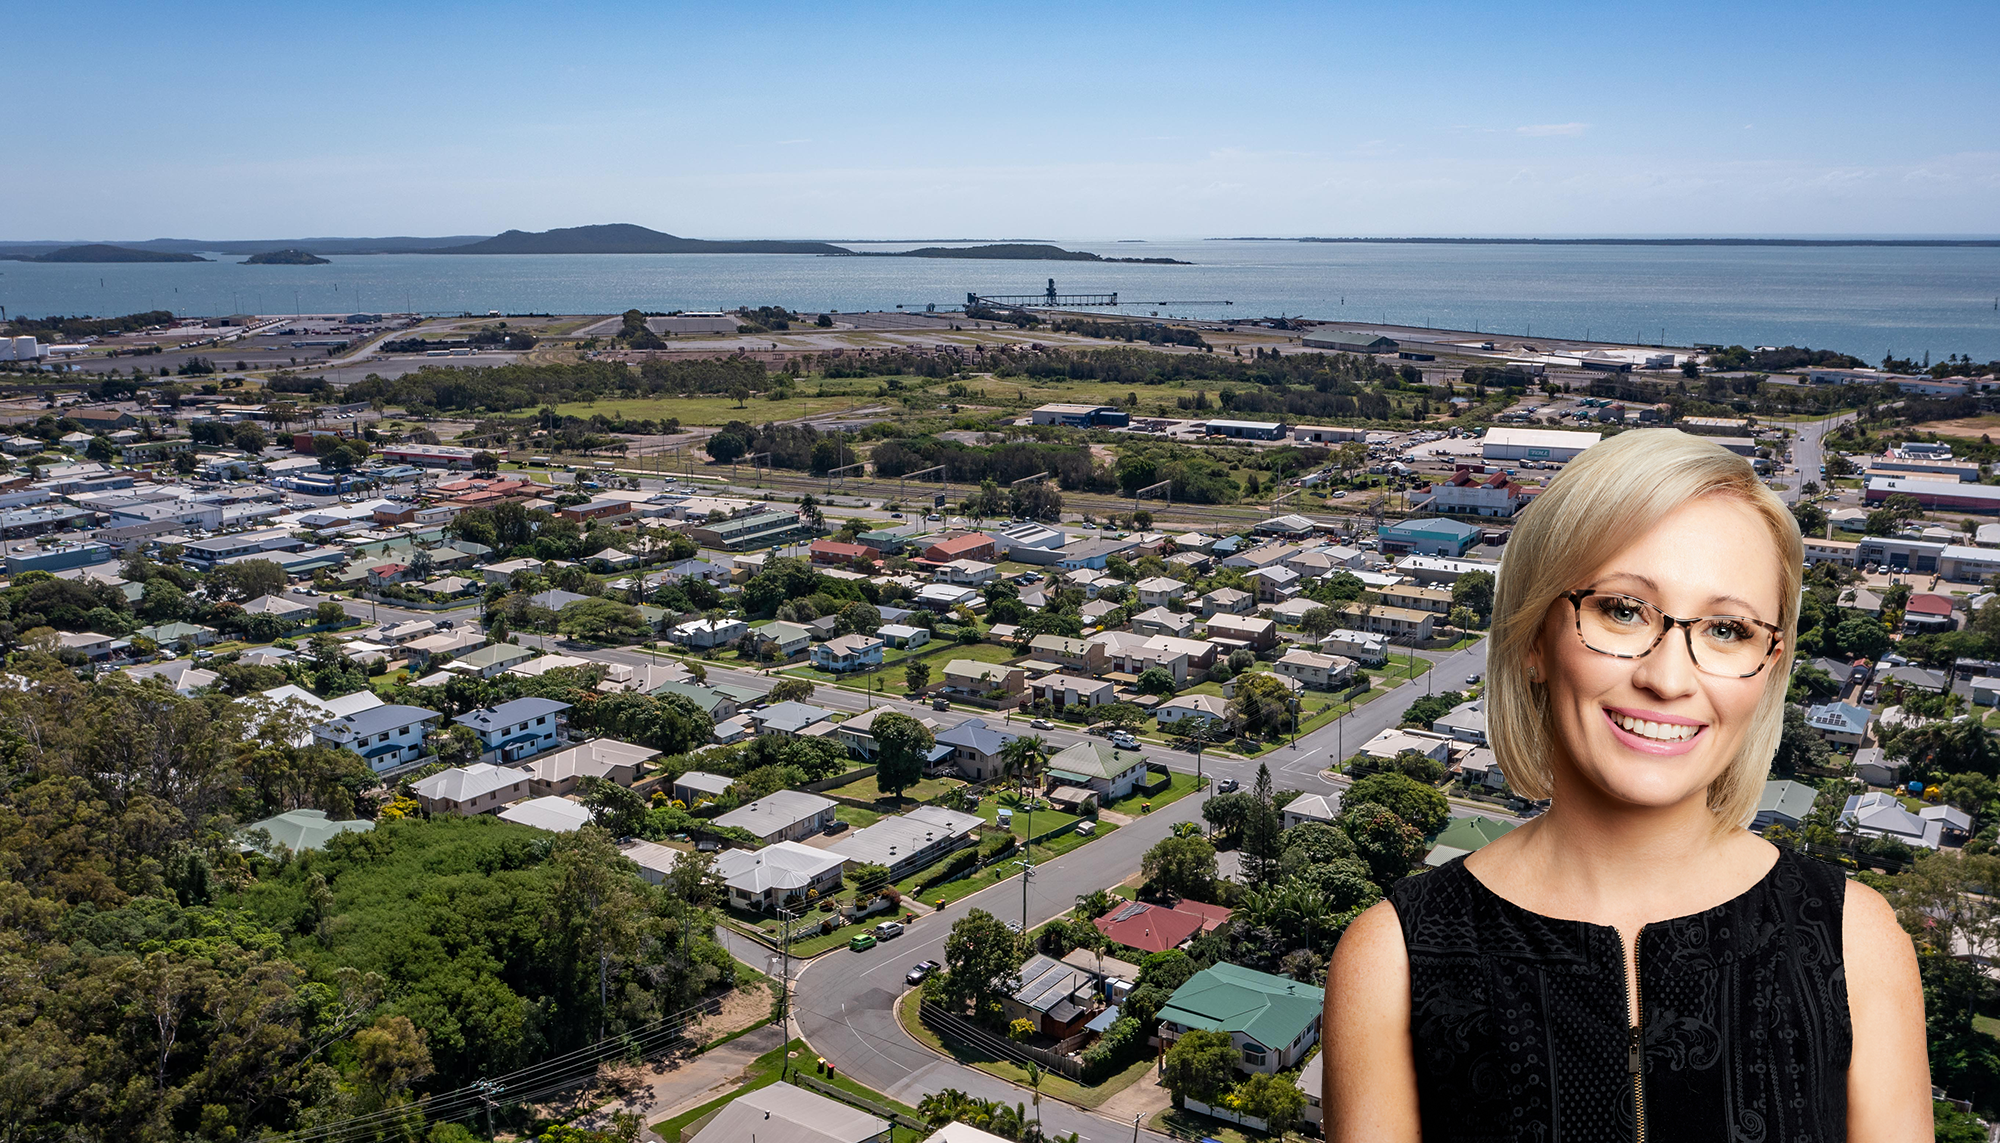 7 KEY REASONS GLADSTONE'S PROPERTY MARKET WILL CONTINUE TO IMPROVE IN 2021